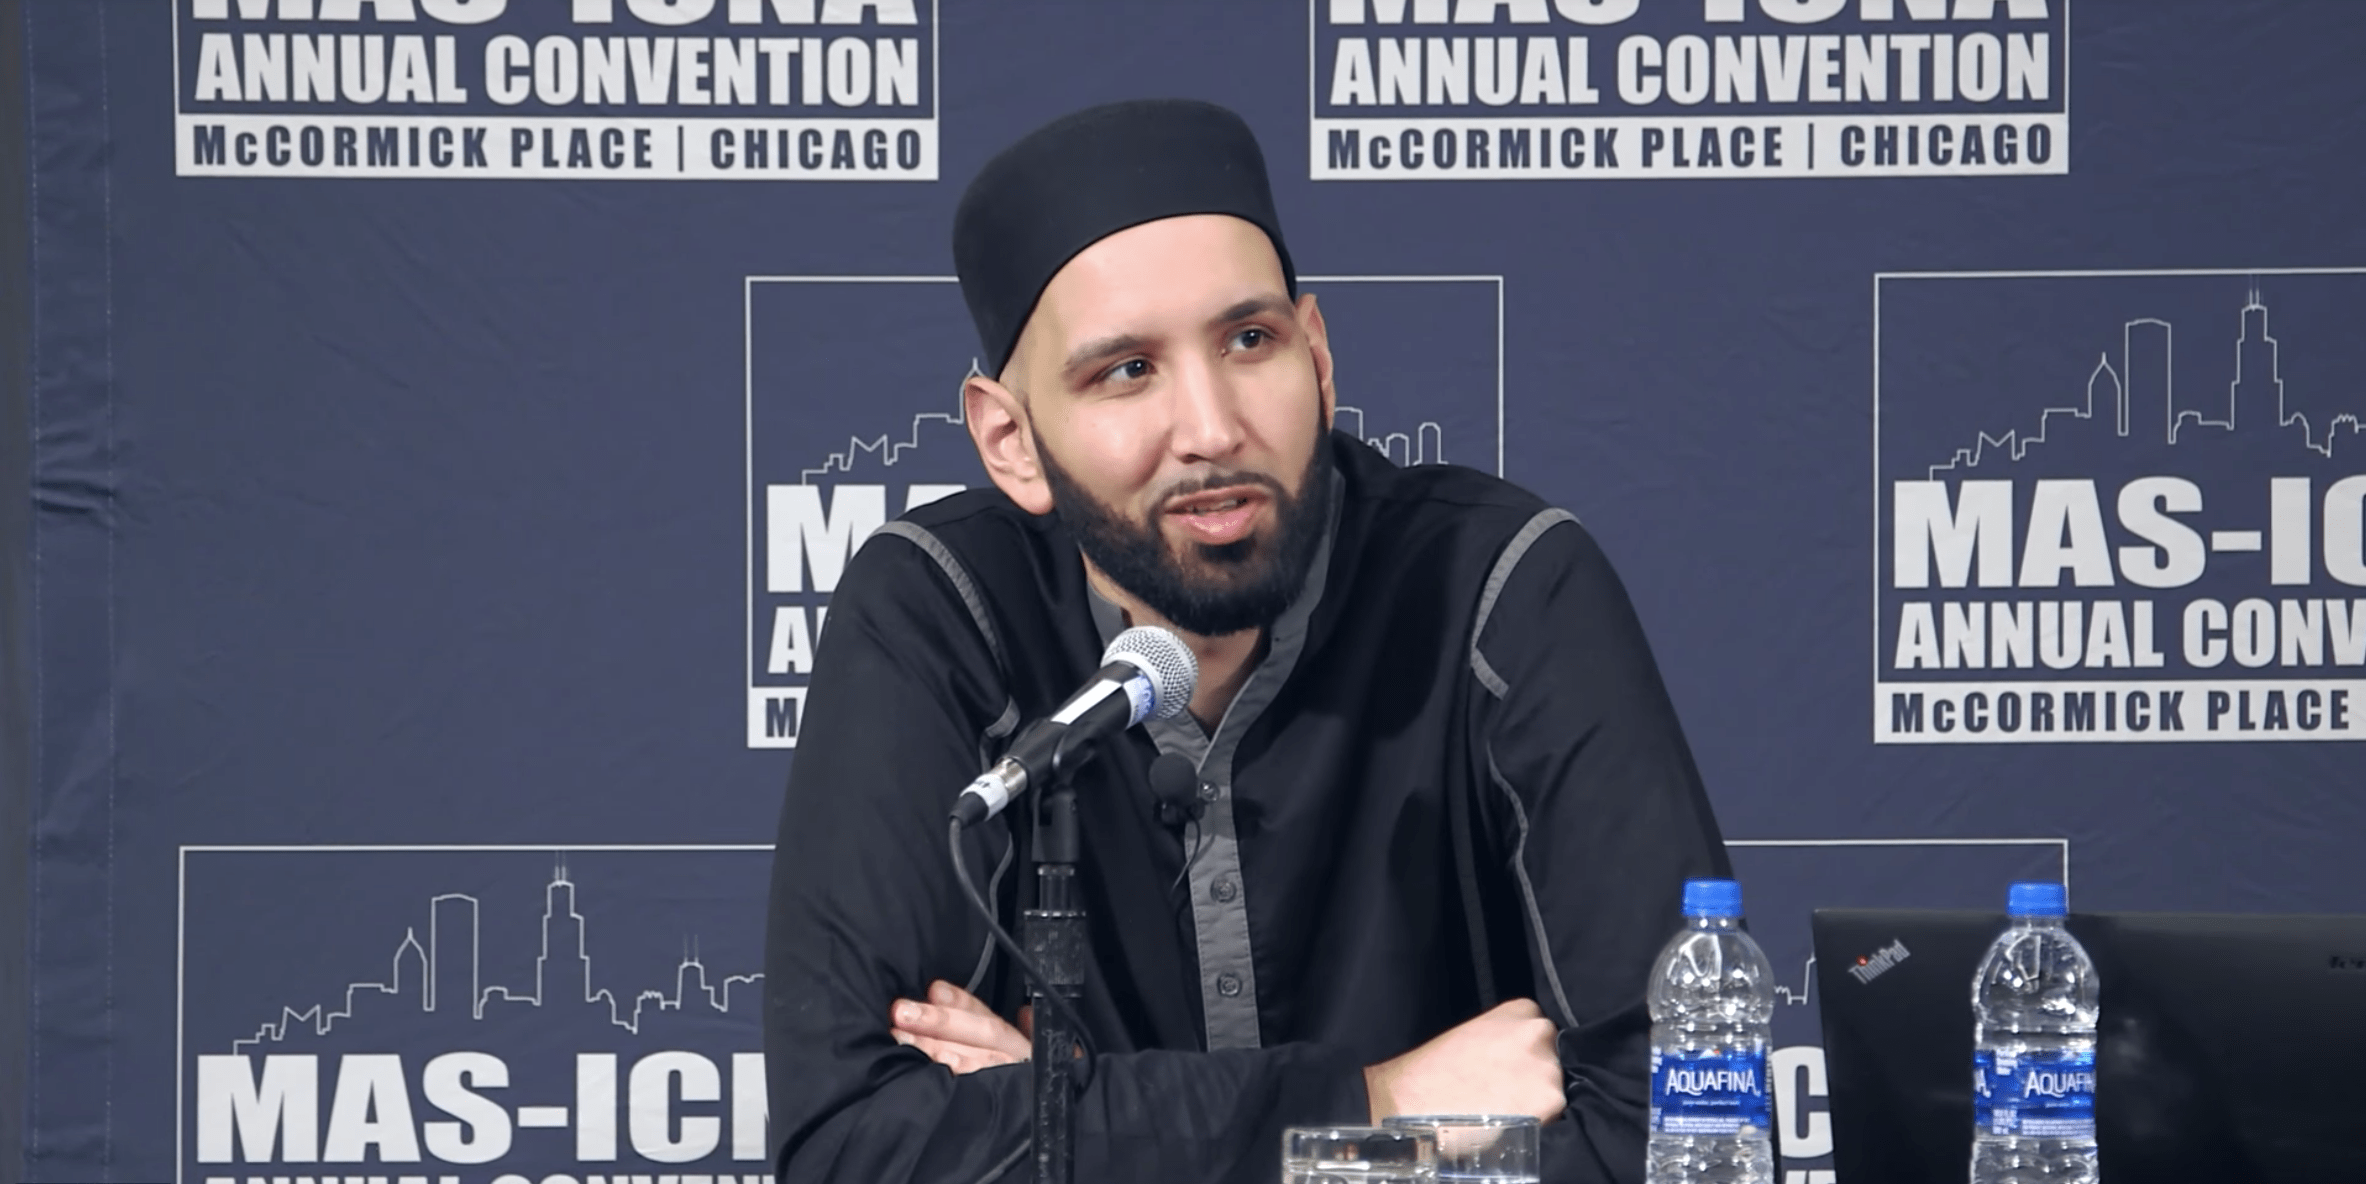 Omar Suleiman – You Ruled and you were Just. You felt Safe, so you Slept